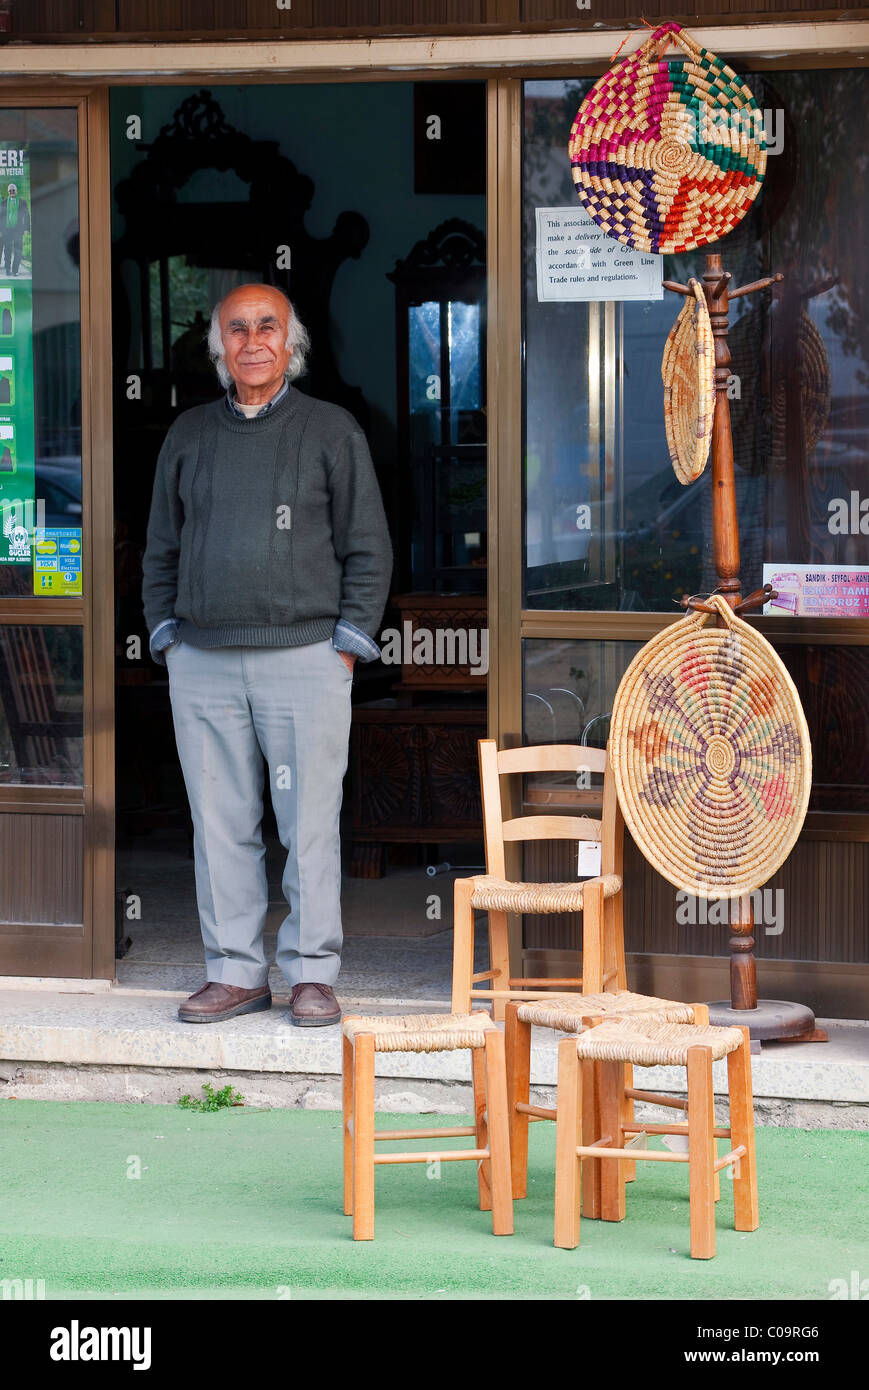 Proud shopkeeper, Famagusta, Northern Cyprus, Turkish, Cyprus and Southern Europe - Stock Image